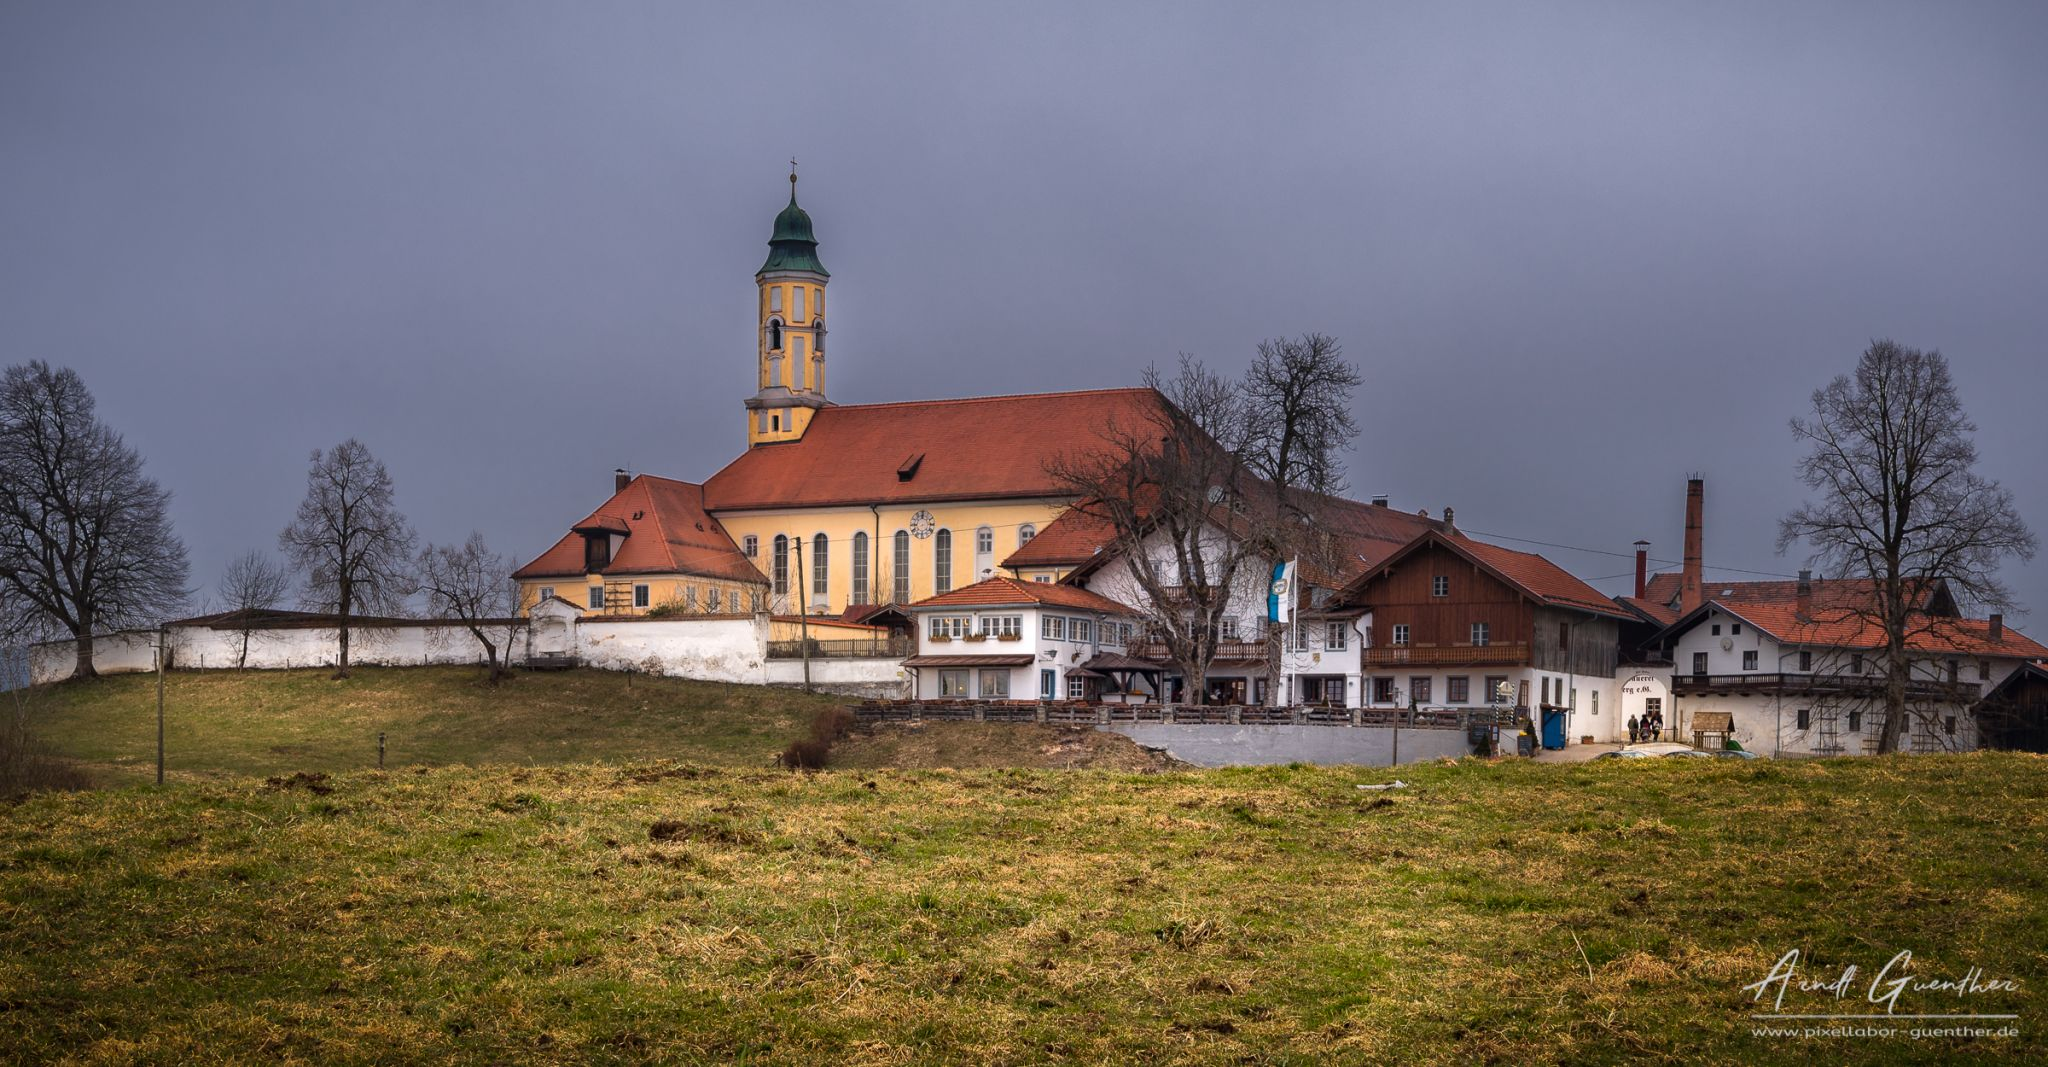 Monastery on the hill, Germany